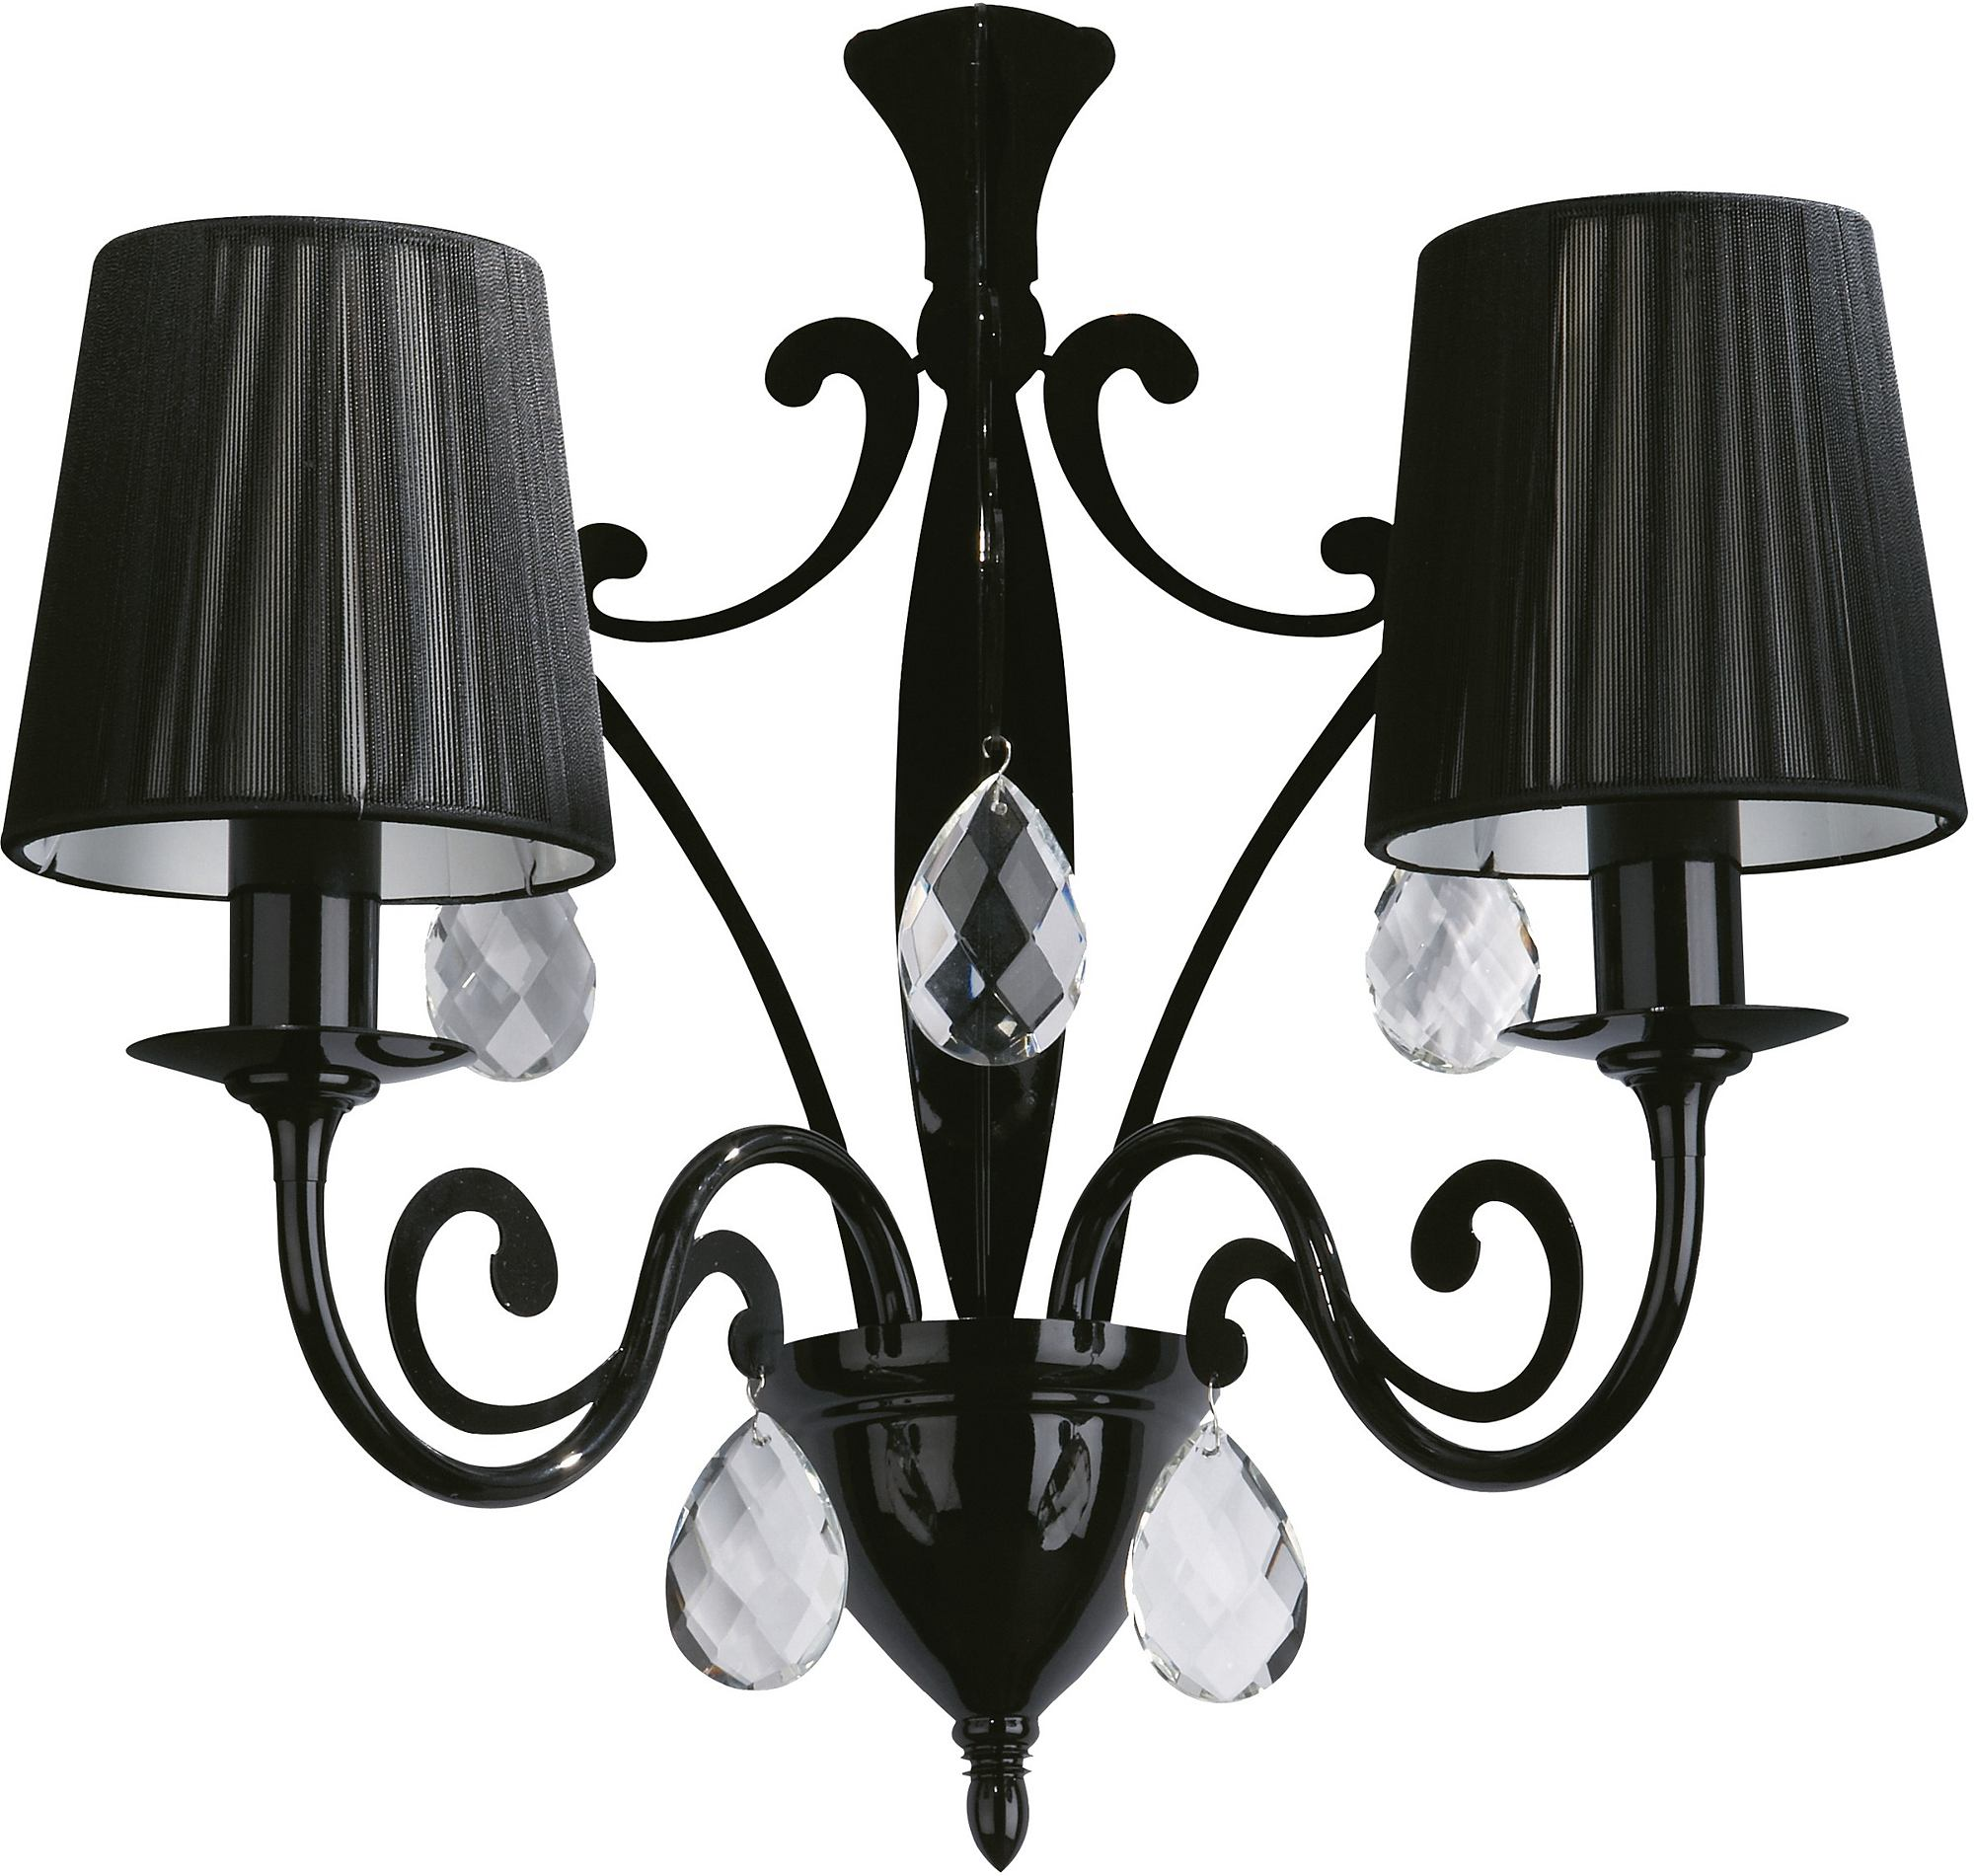 - Roomstylers 36682 Black wall lamp